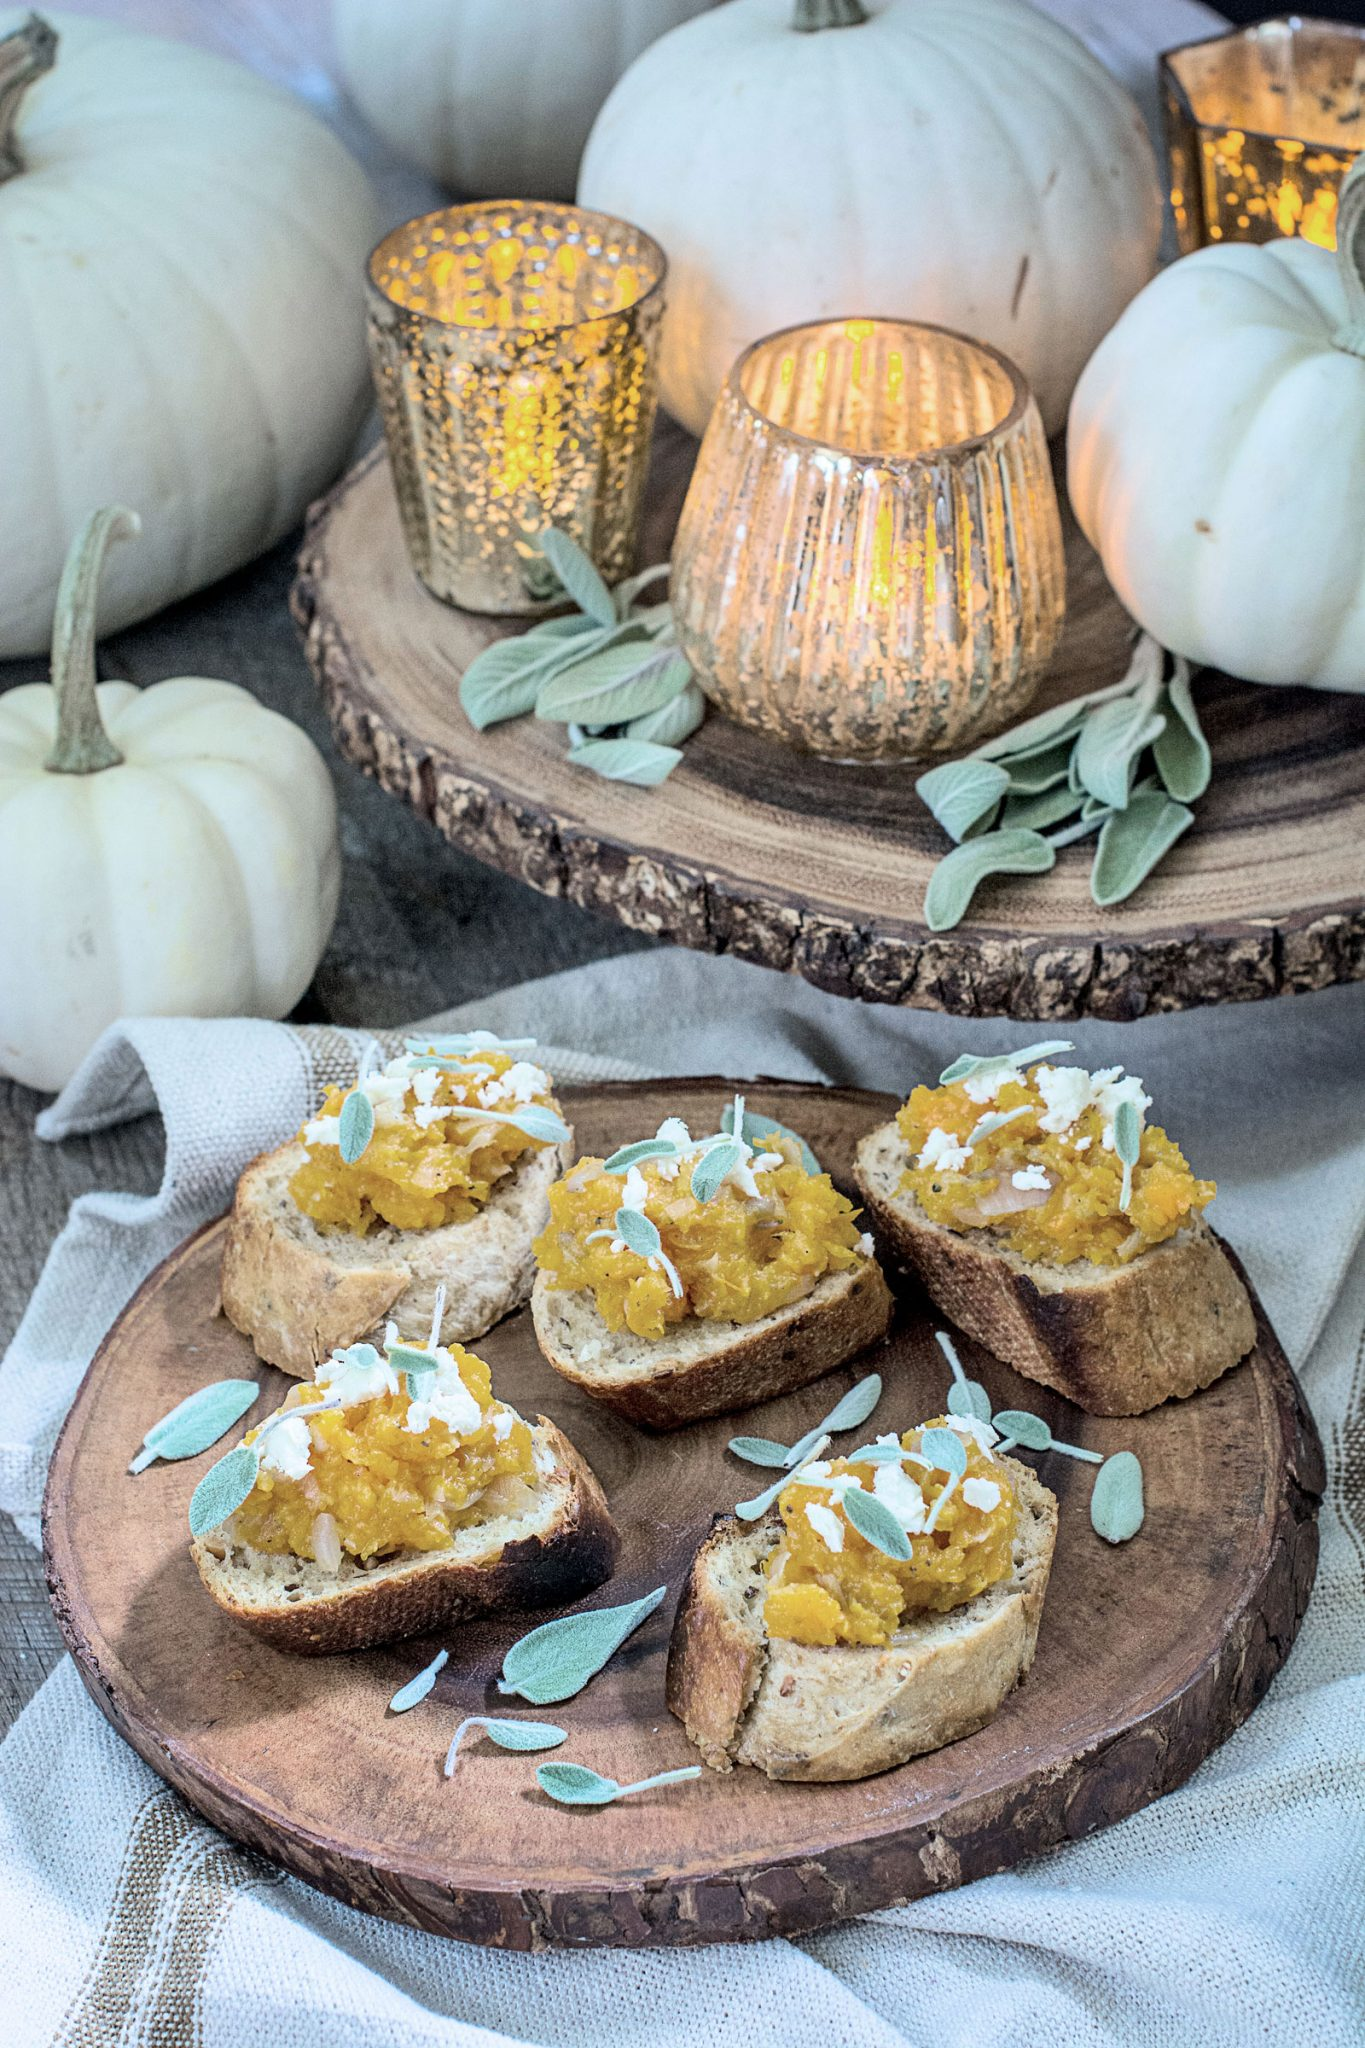 Sage with Butternut Squash Bruschetta recipe, the perfect appetizer pairing for your Thanksgiving gathering! @SonomaCutrer #21andup #SonomaCutrer #ad